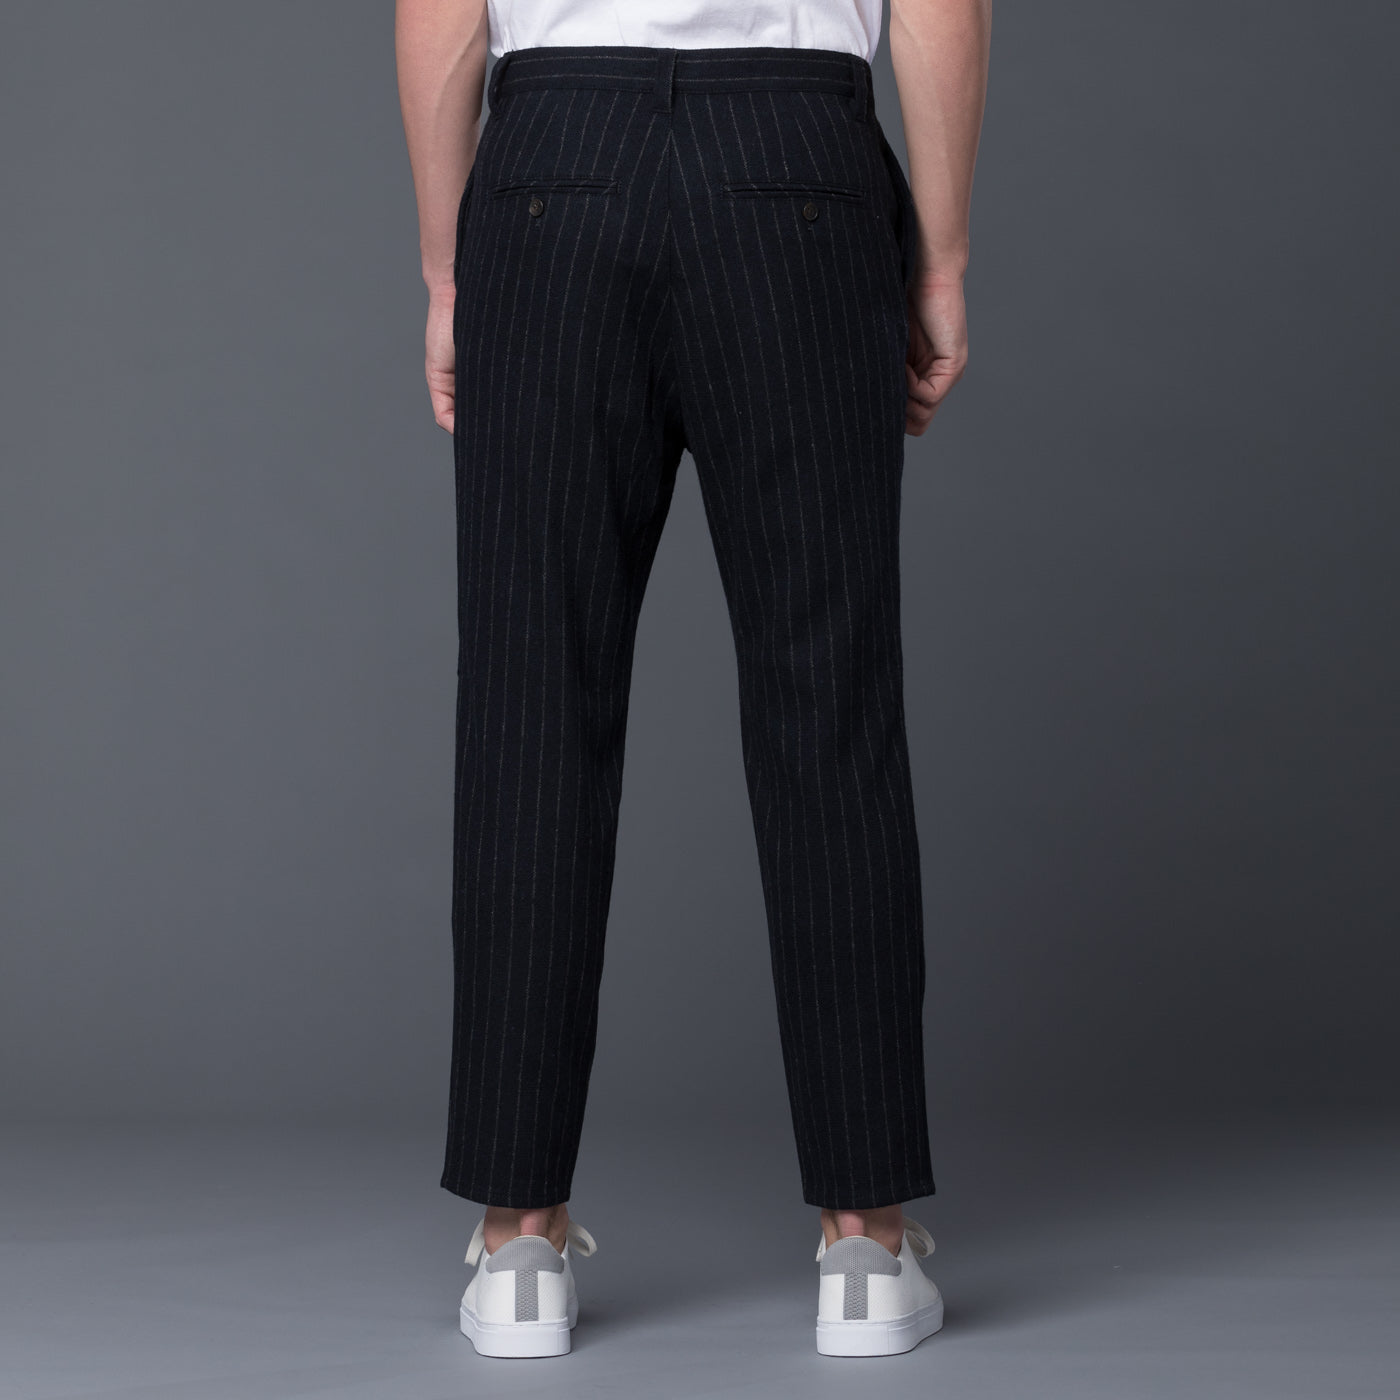 Gustav Von Aschenbach Striped Wool Trousers